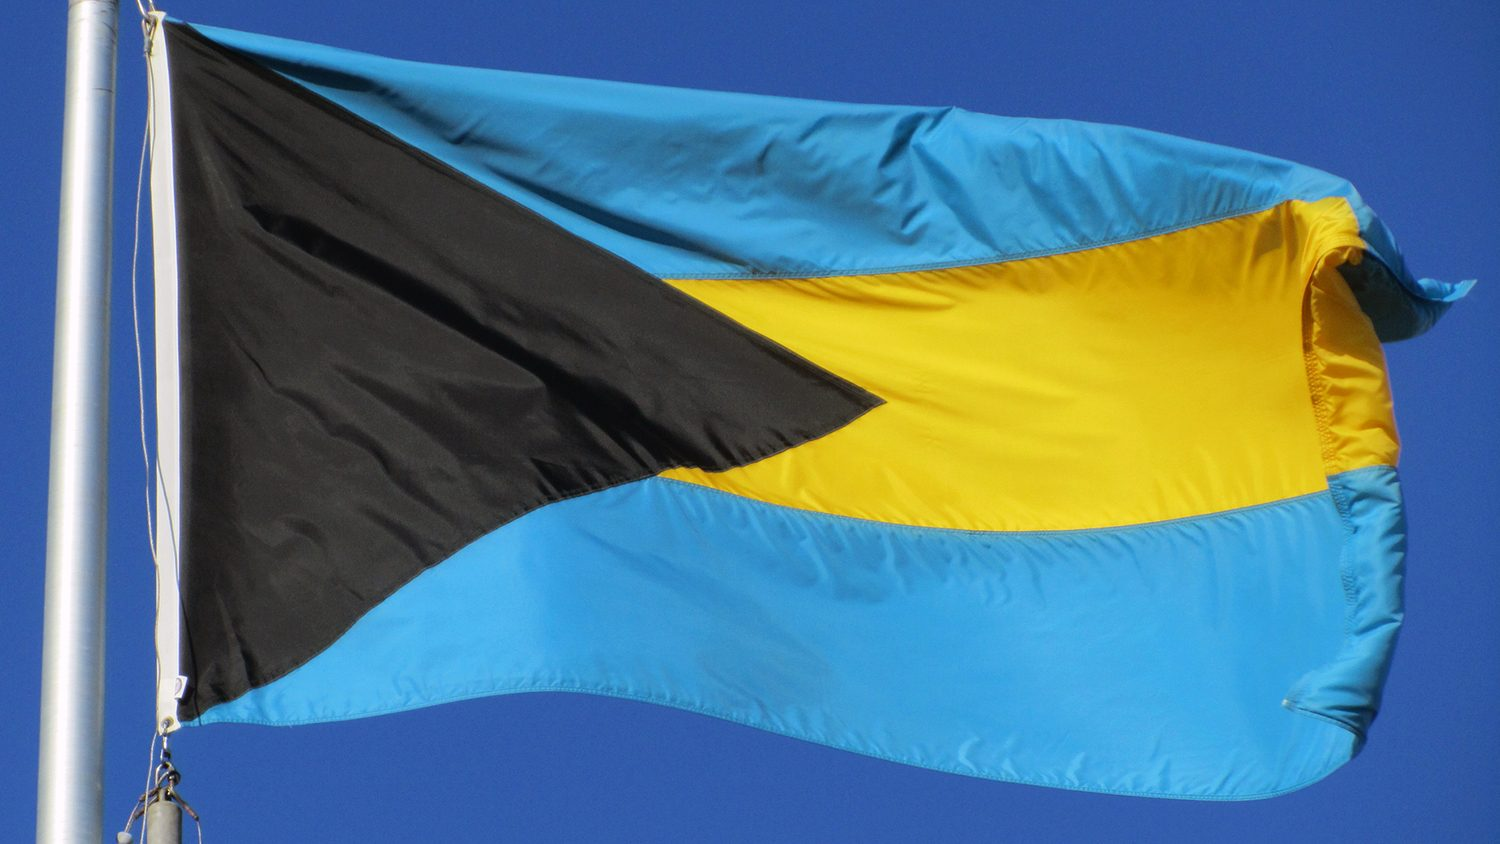 Blue flag with a yellow stripe and black triangle, Bahamas flag